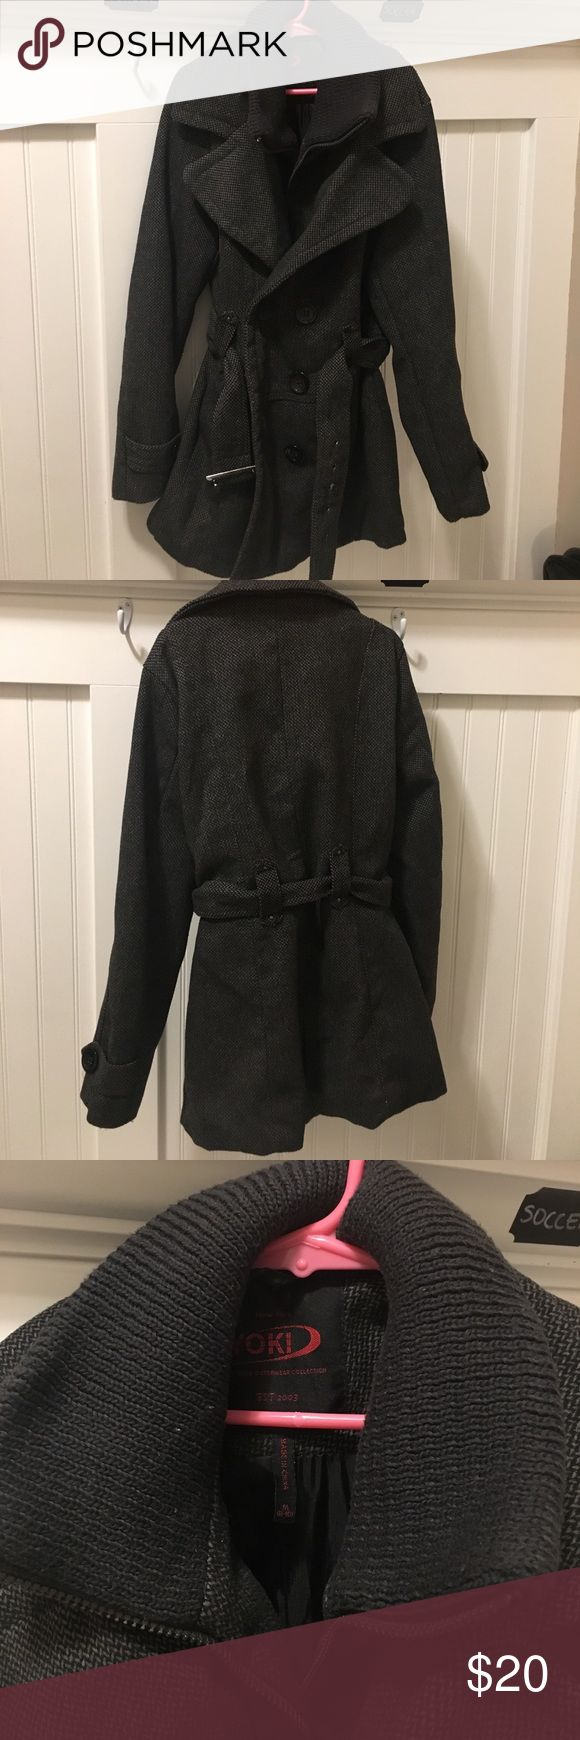 Girls Gray and Black Pea Coat Fashionable pea coat with zipper poachers, cute belt and warm, soft collar. Excellent condition. Girls M but is more like a L. Yoki Jackets & Coats Pea Coats